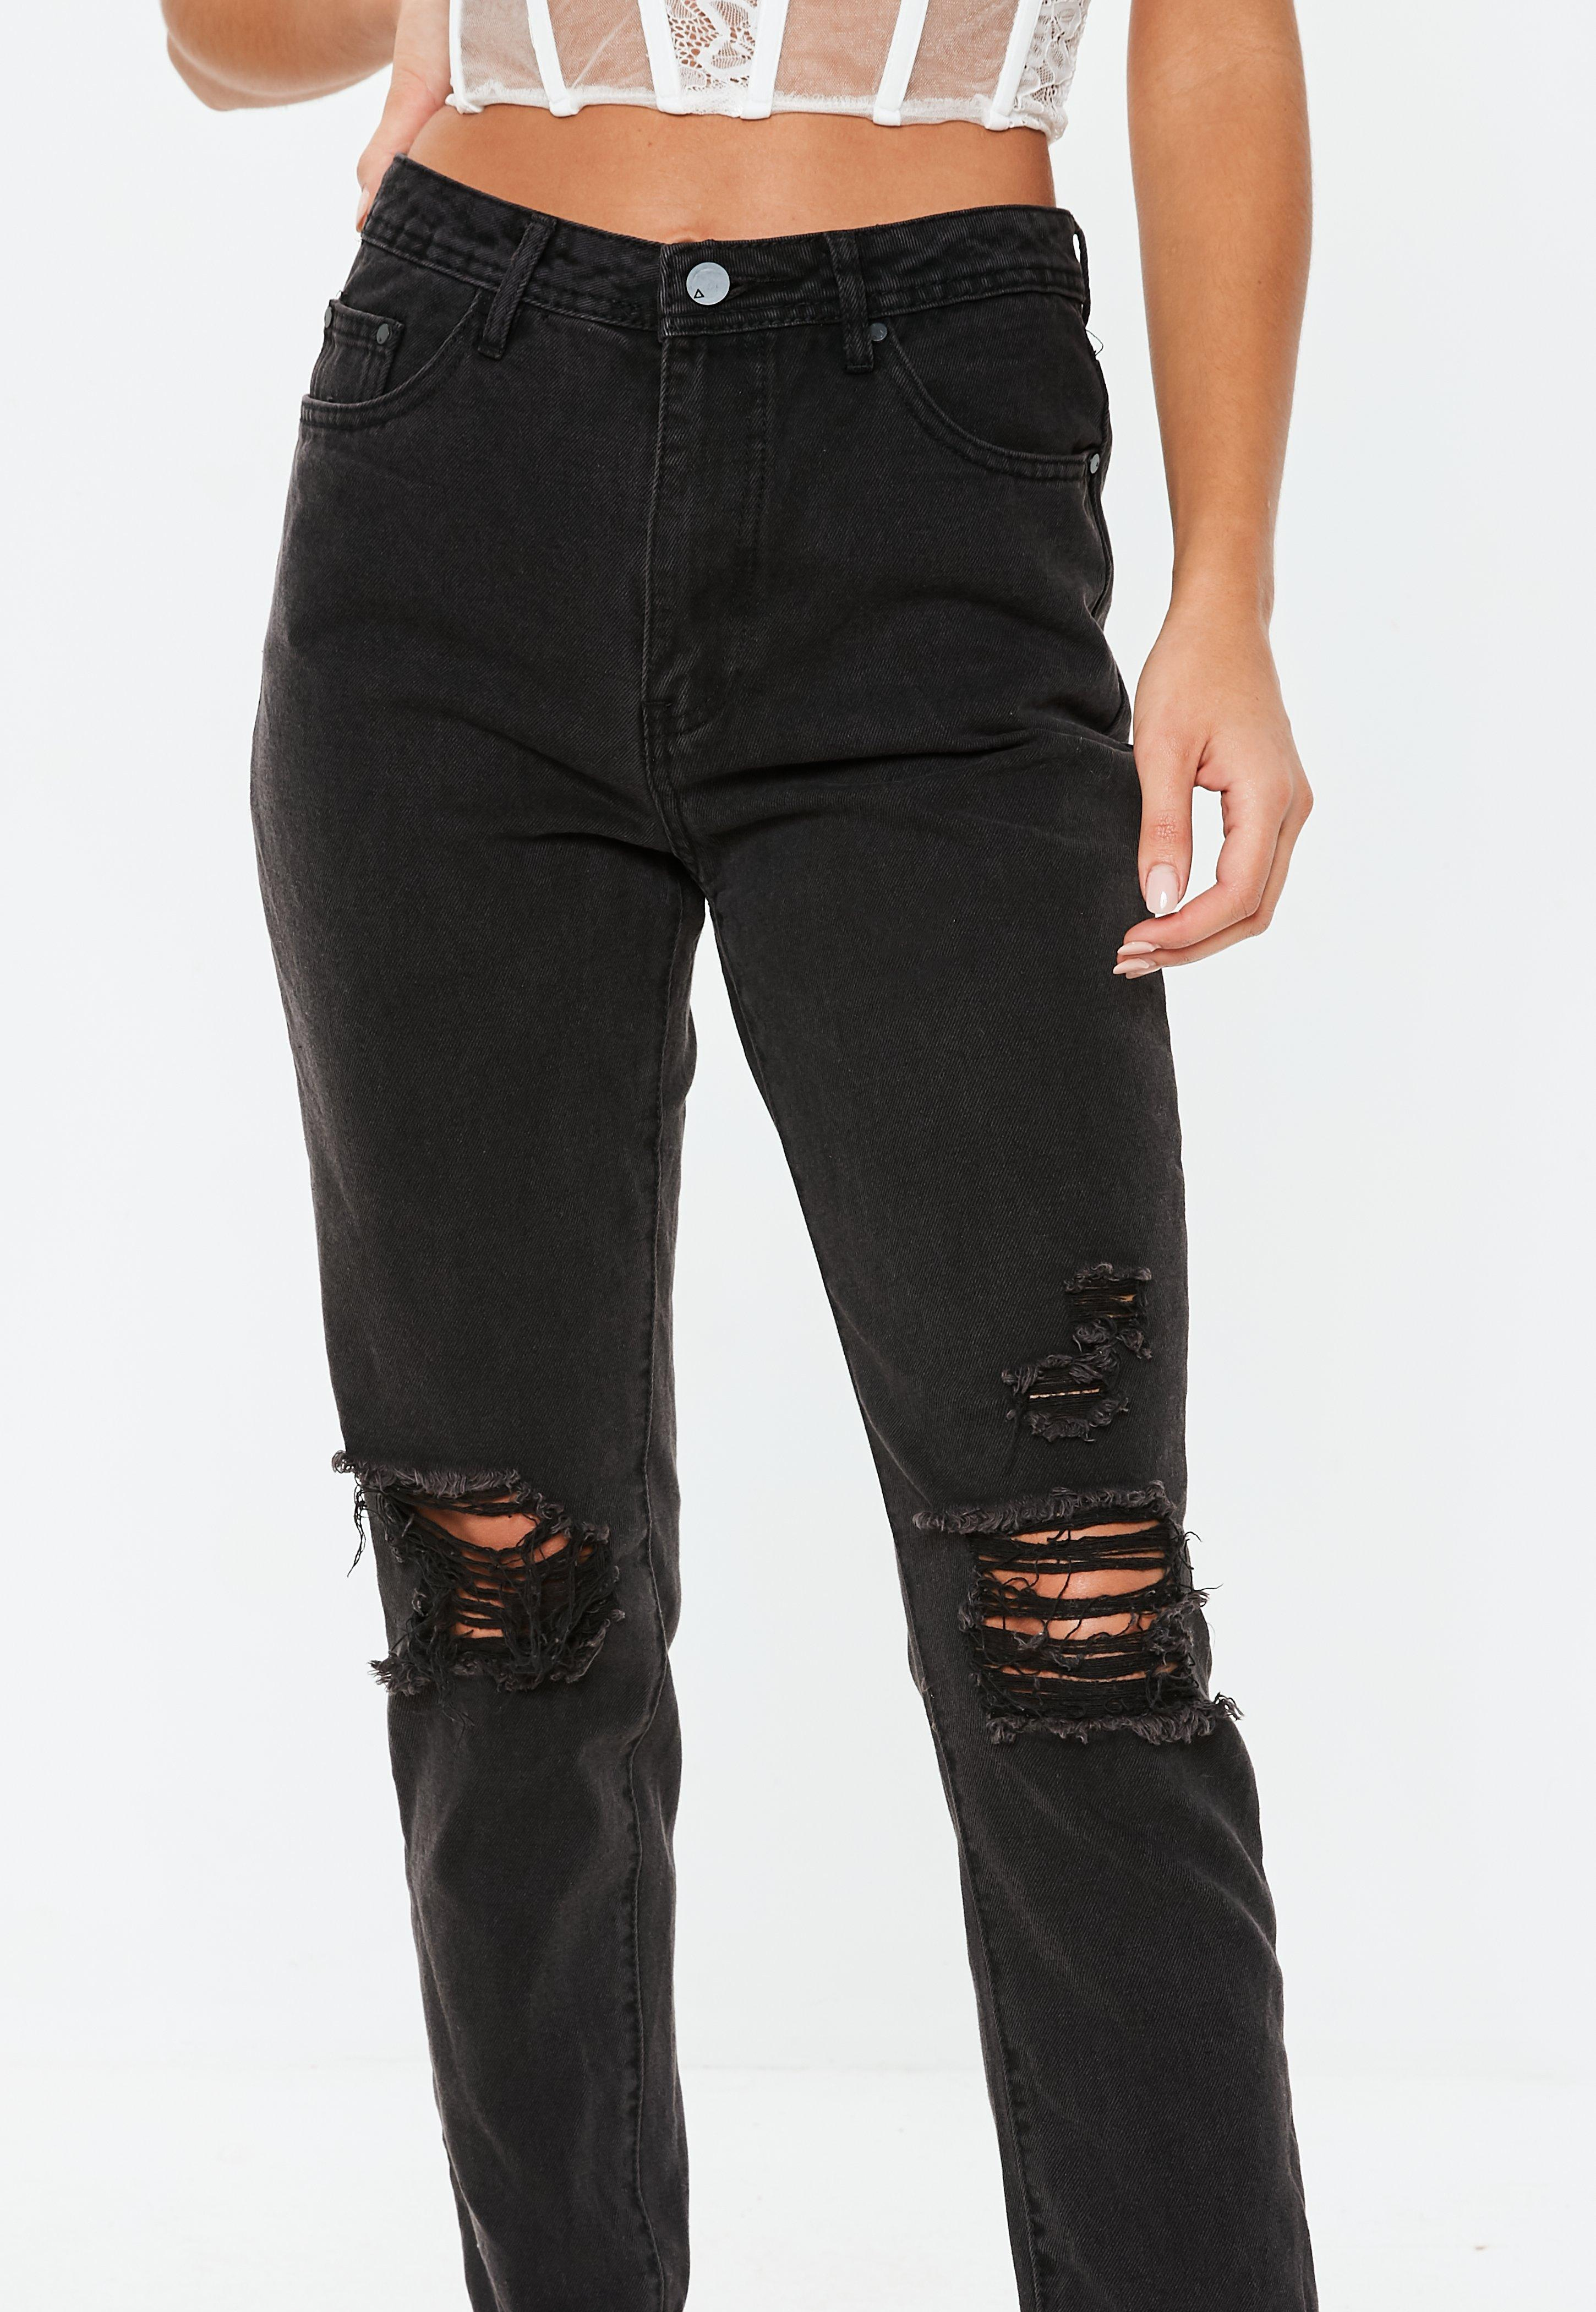 Black Riot High Rise Busted Knee Mom Jeans